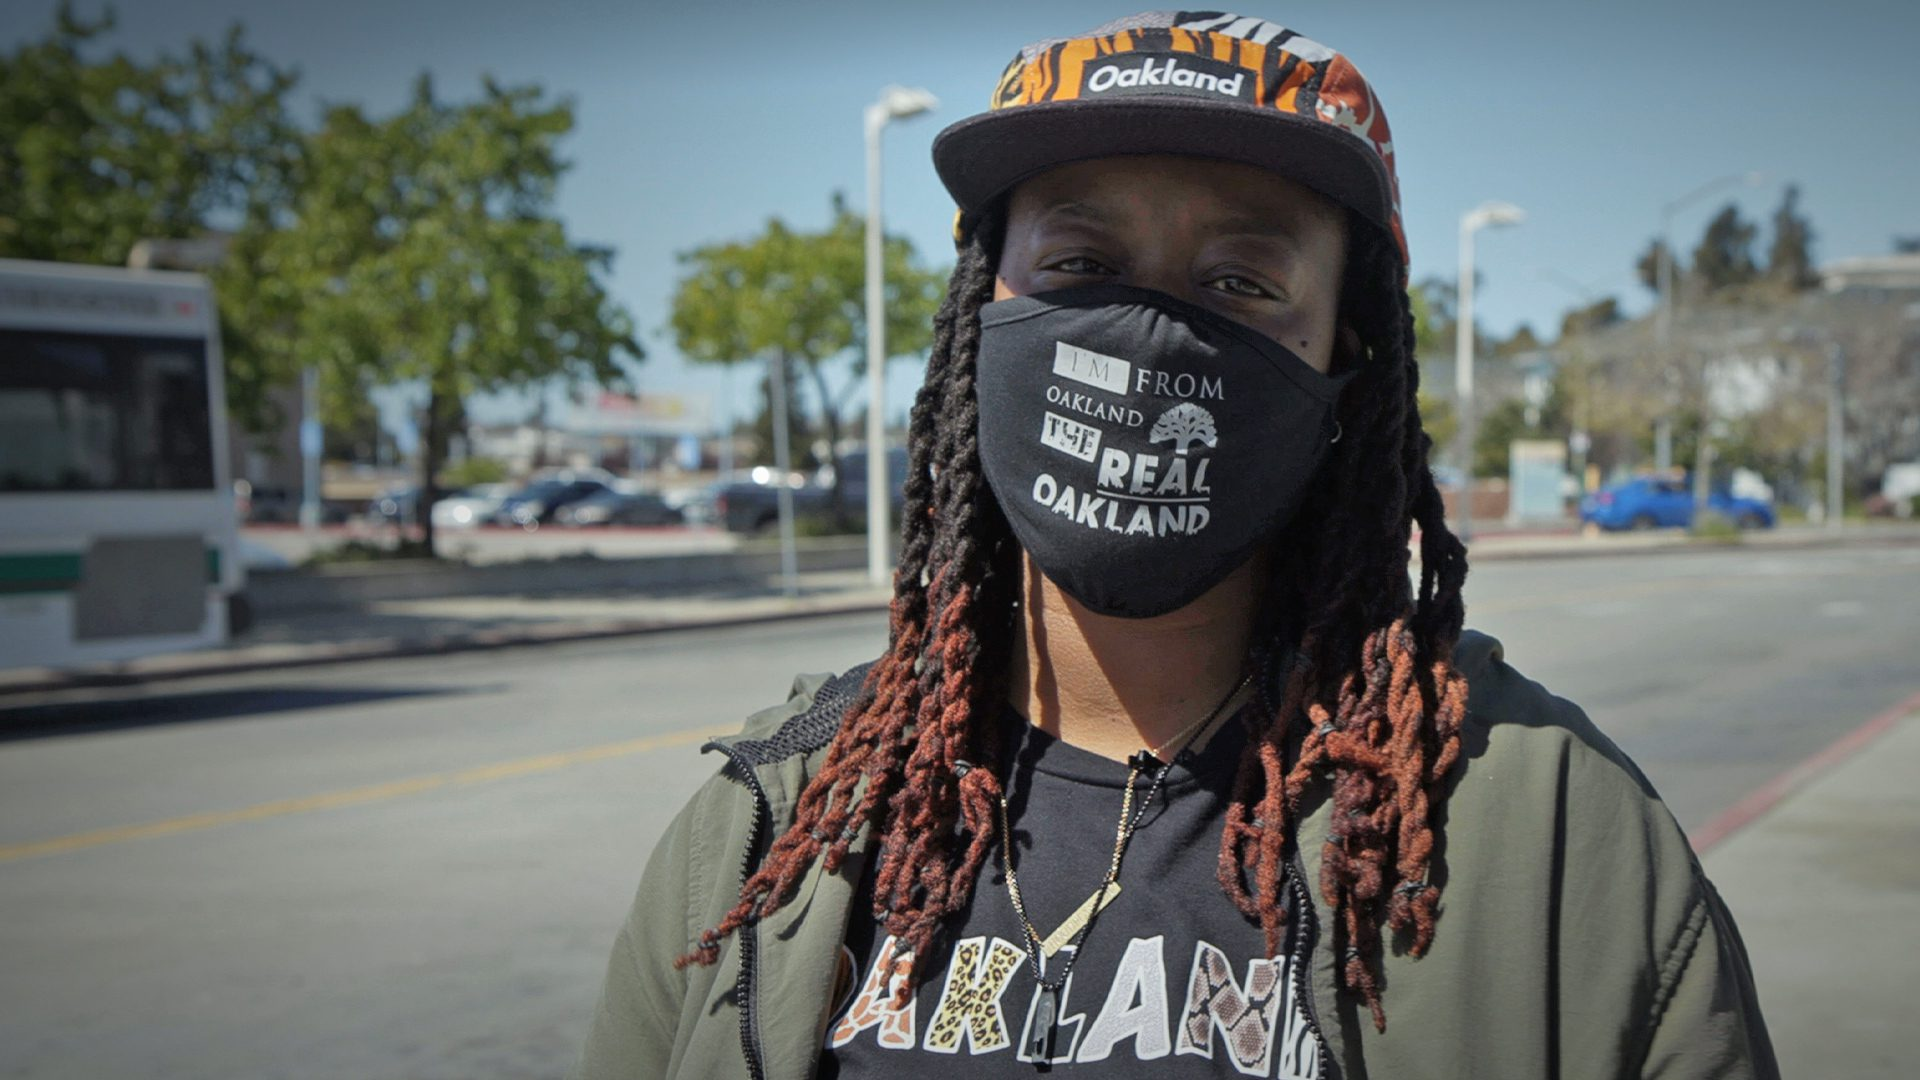 Protecting Deep East Oakland